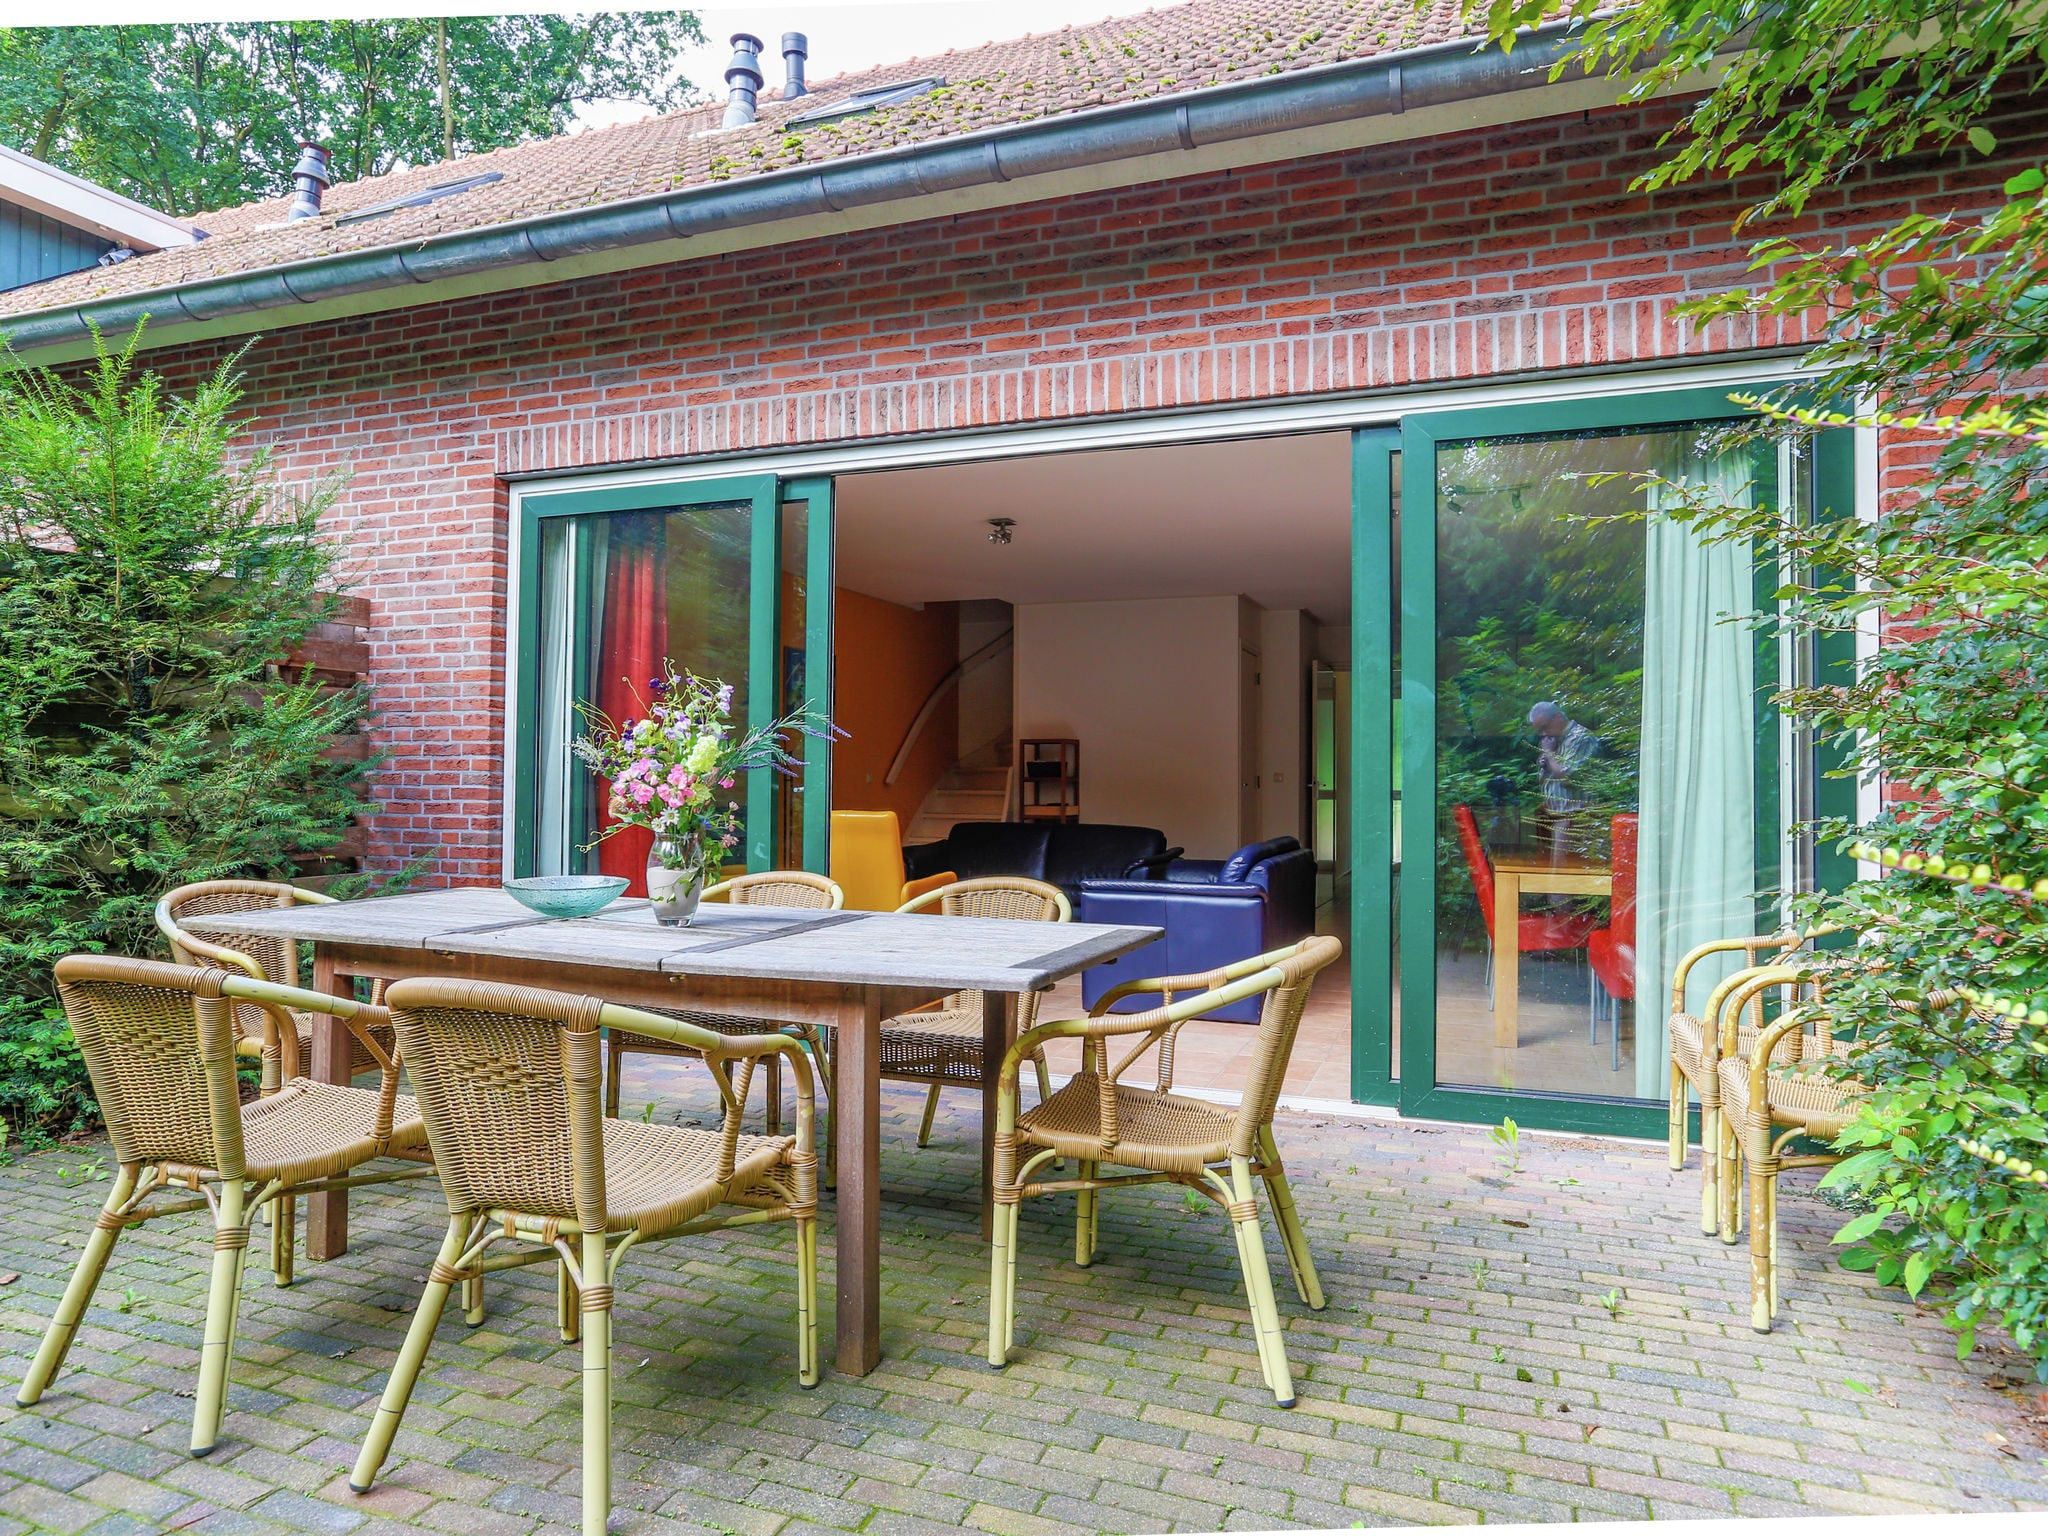 Holland | Gelderland | Holiday home De bosrand | all year | GardenSummer